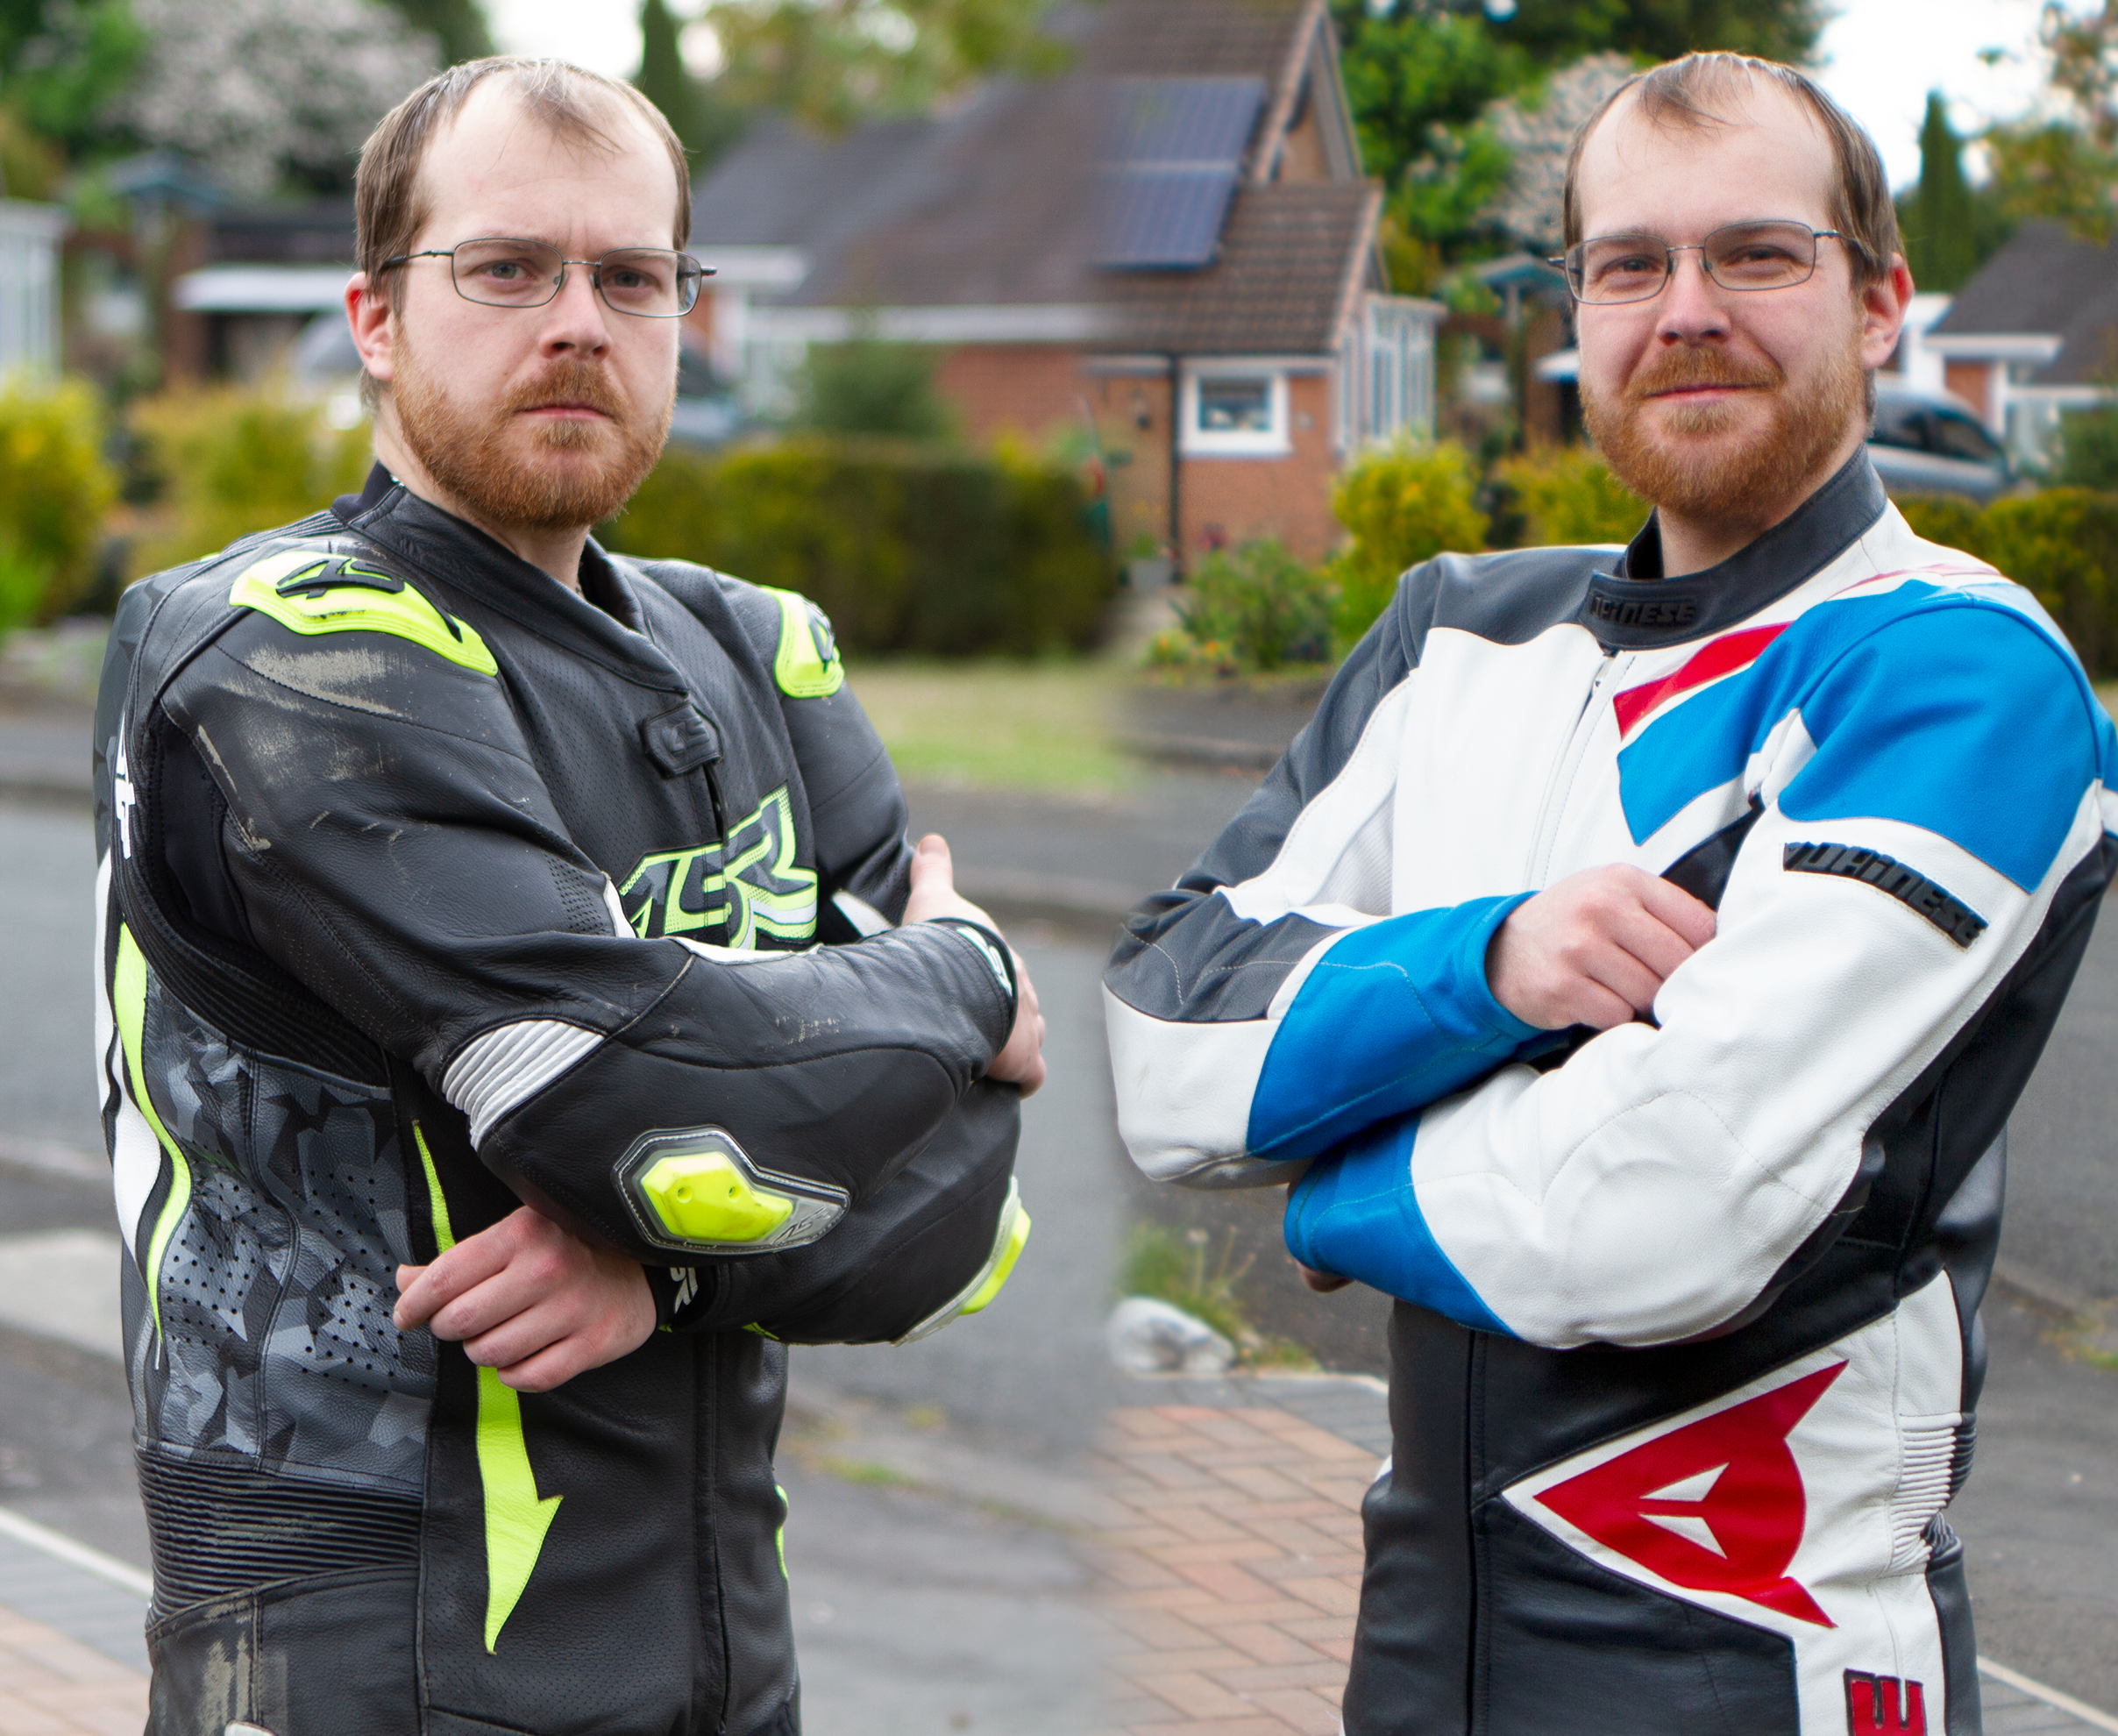 Comparison: 1990 vs 2019 leathers.